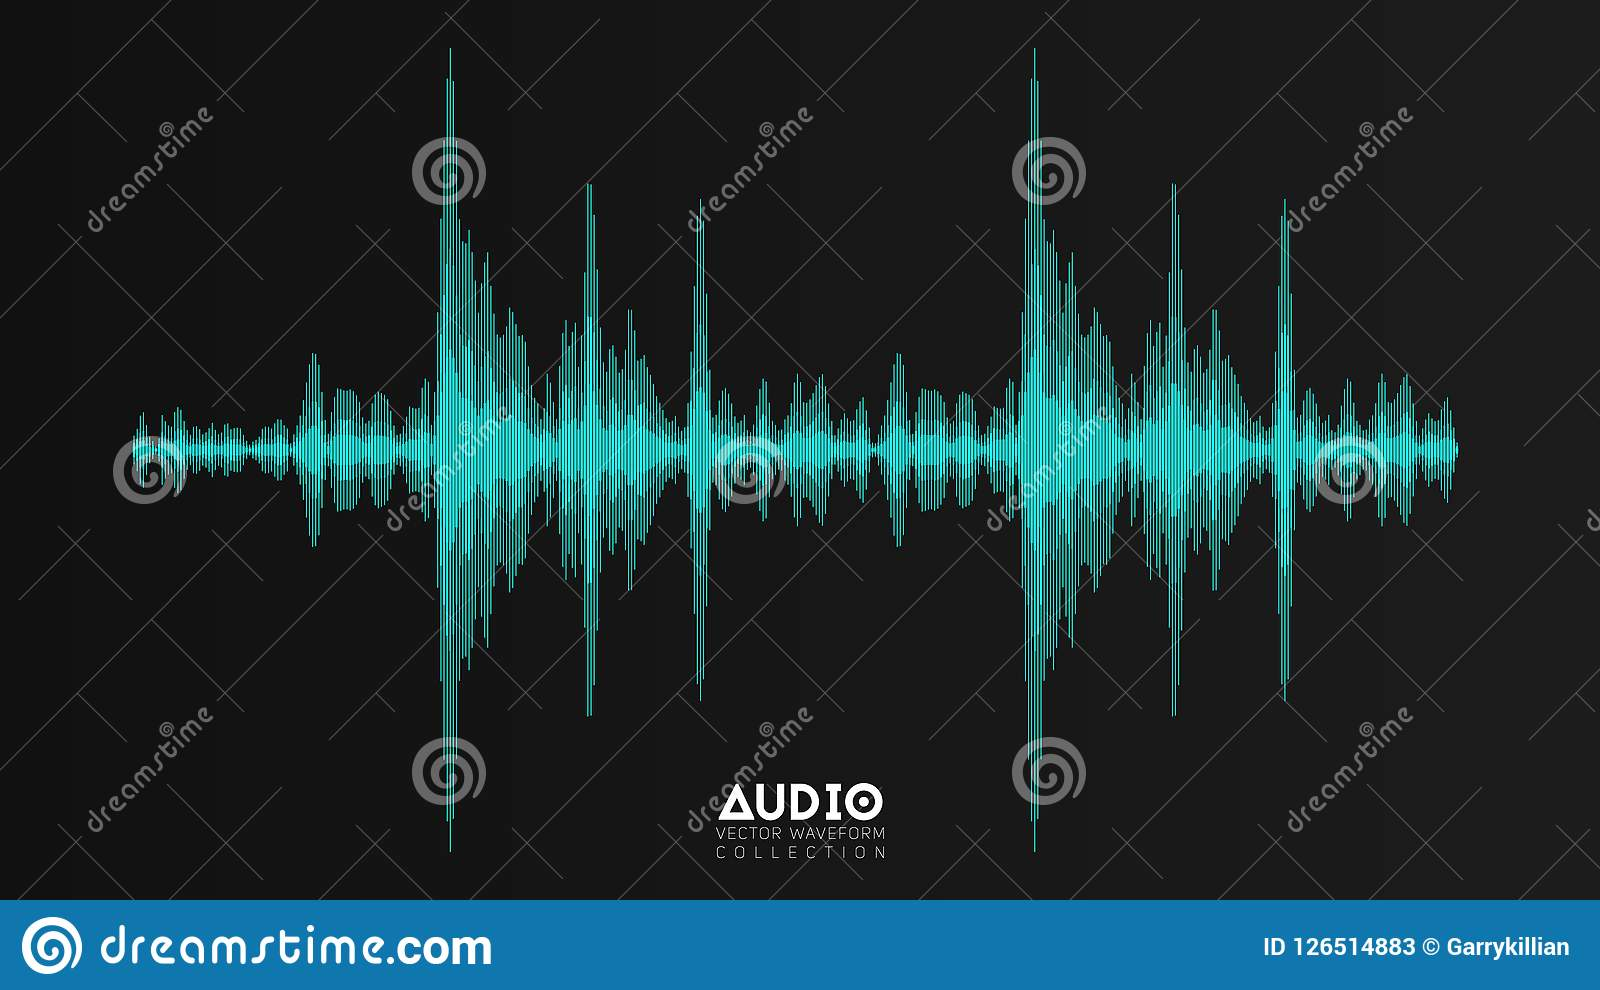 Audio Echo Vector Echo Audio Wavefrom Abstract Music Waves Oscillation